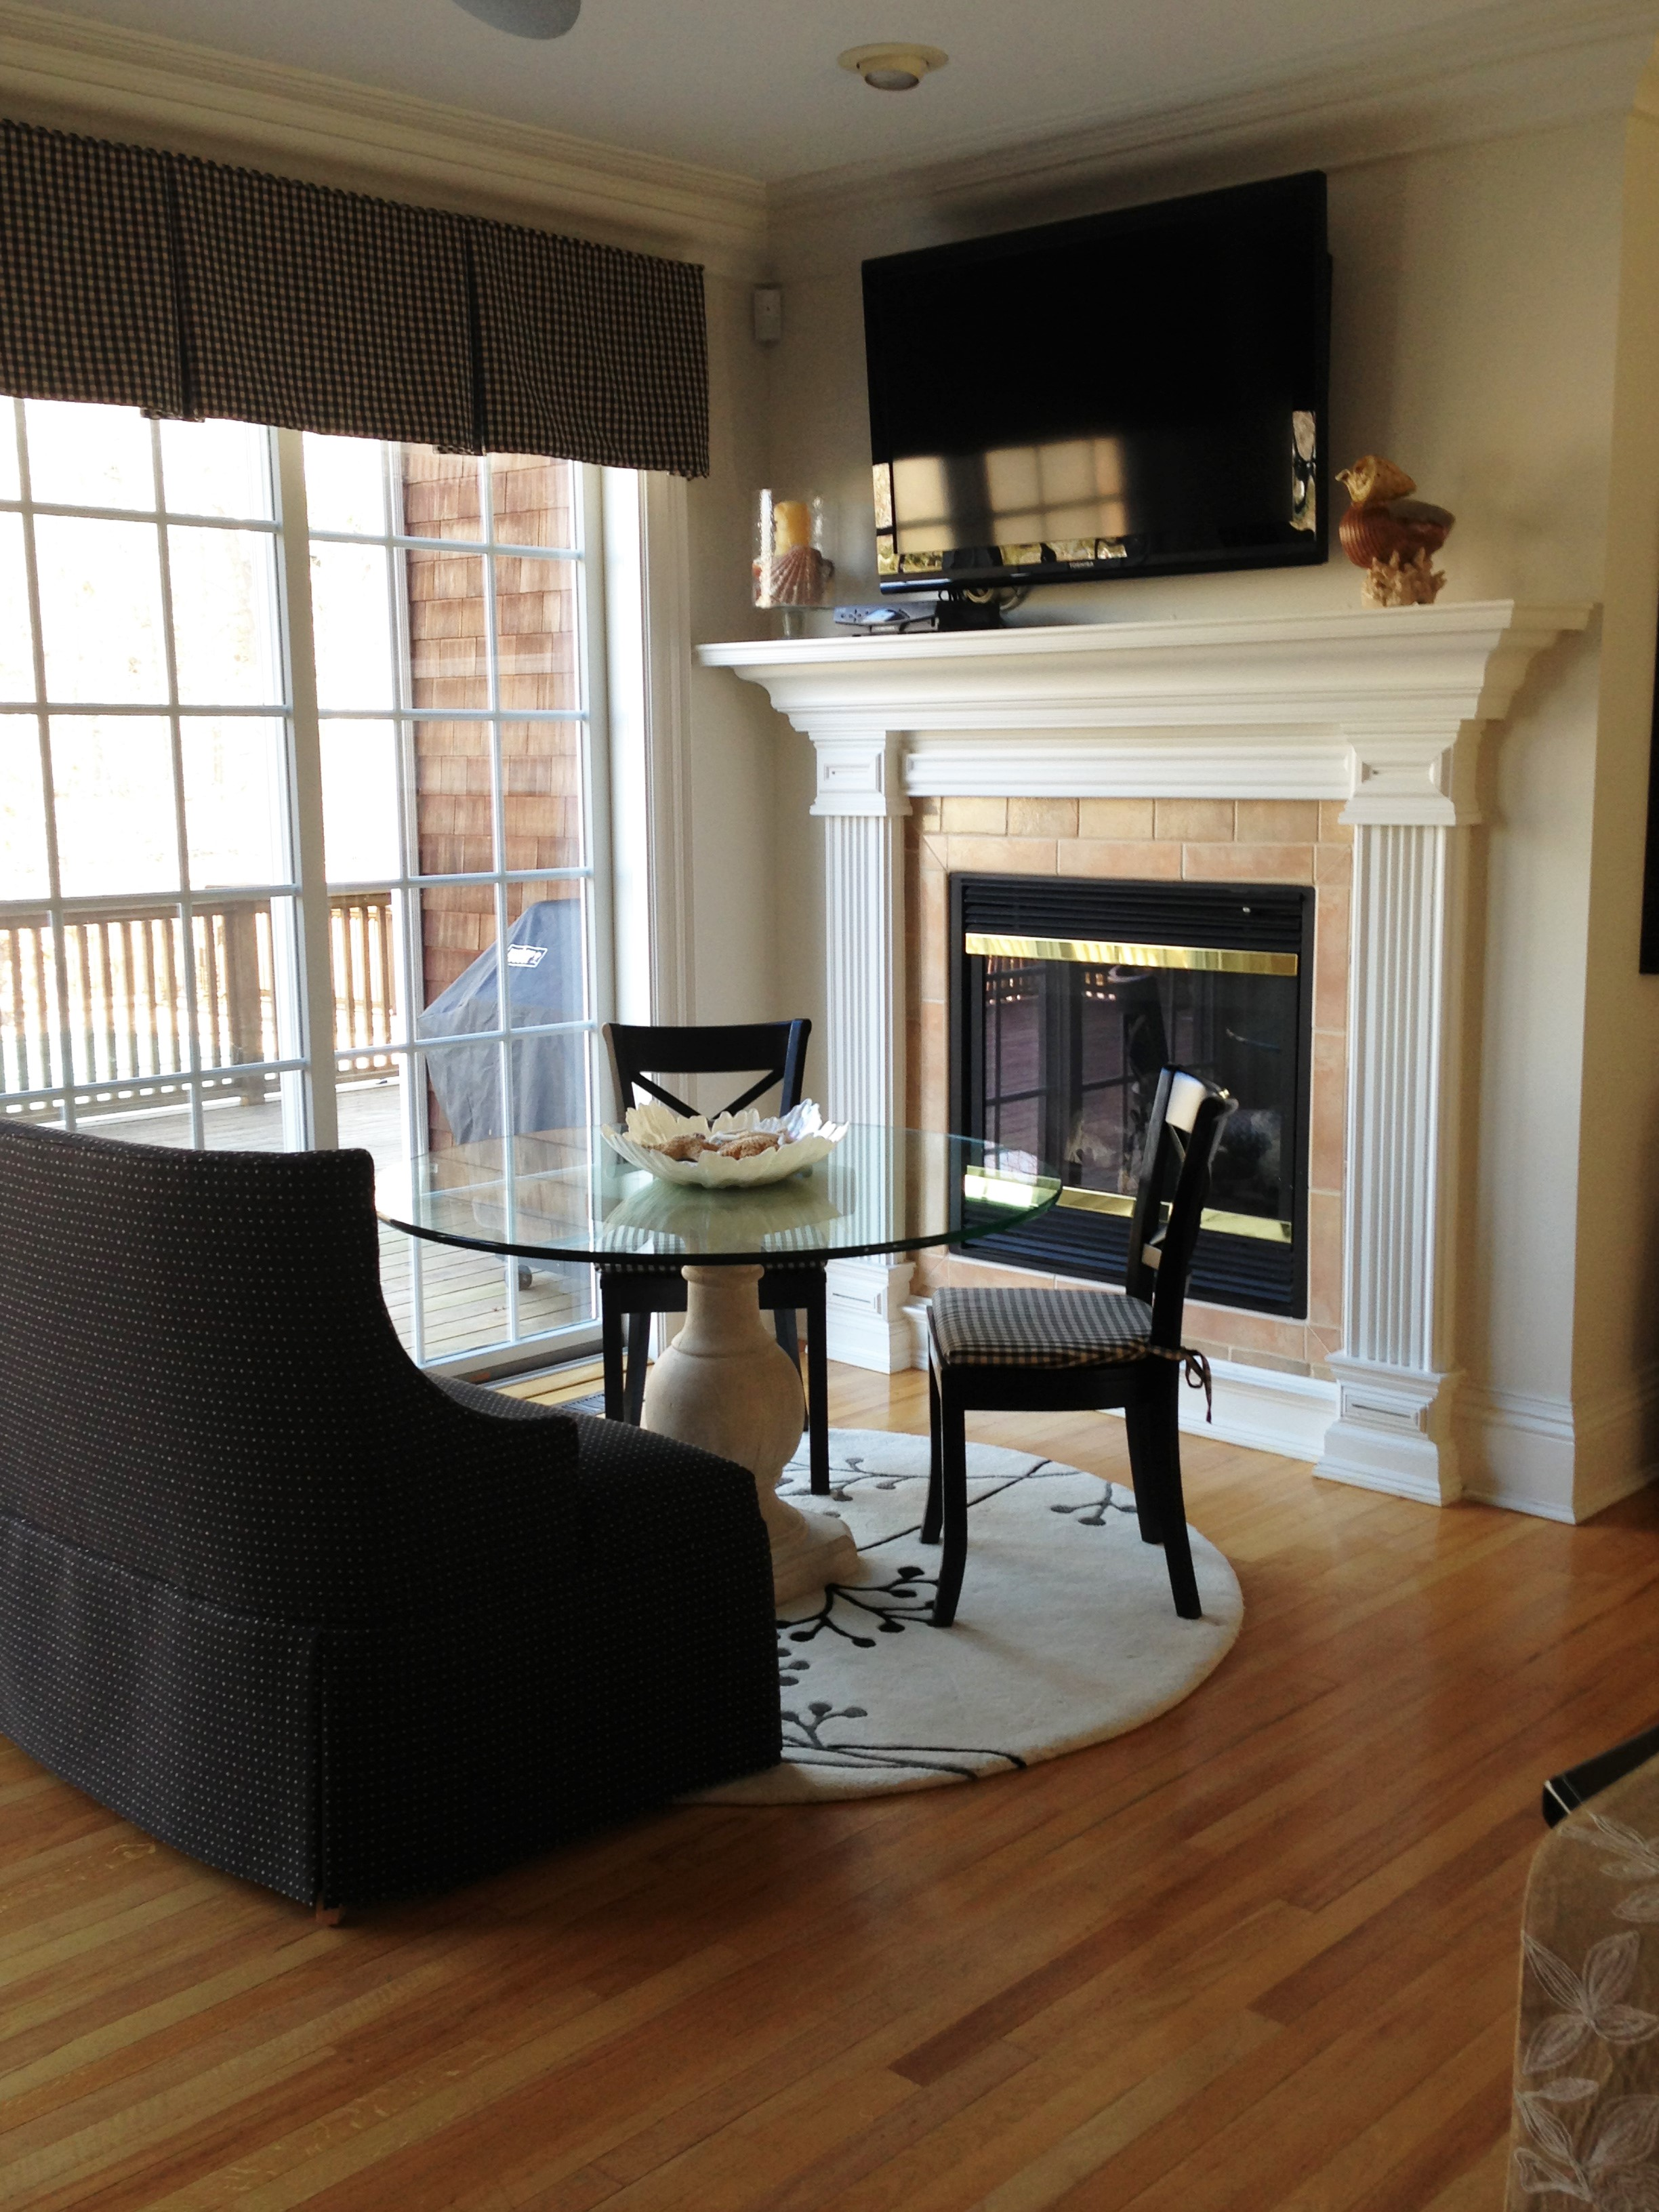 Glass round table for two in front of fireplace